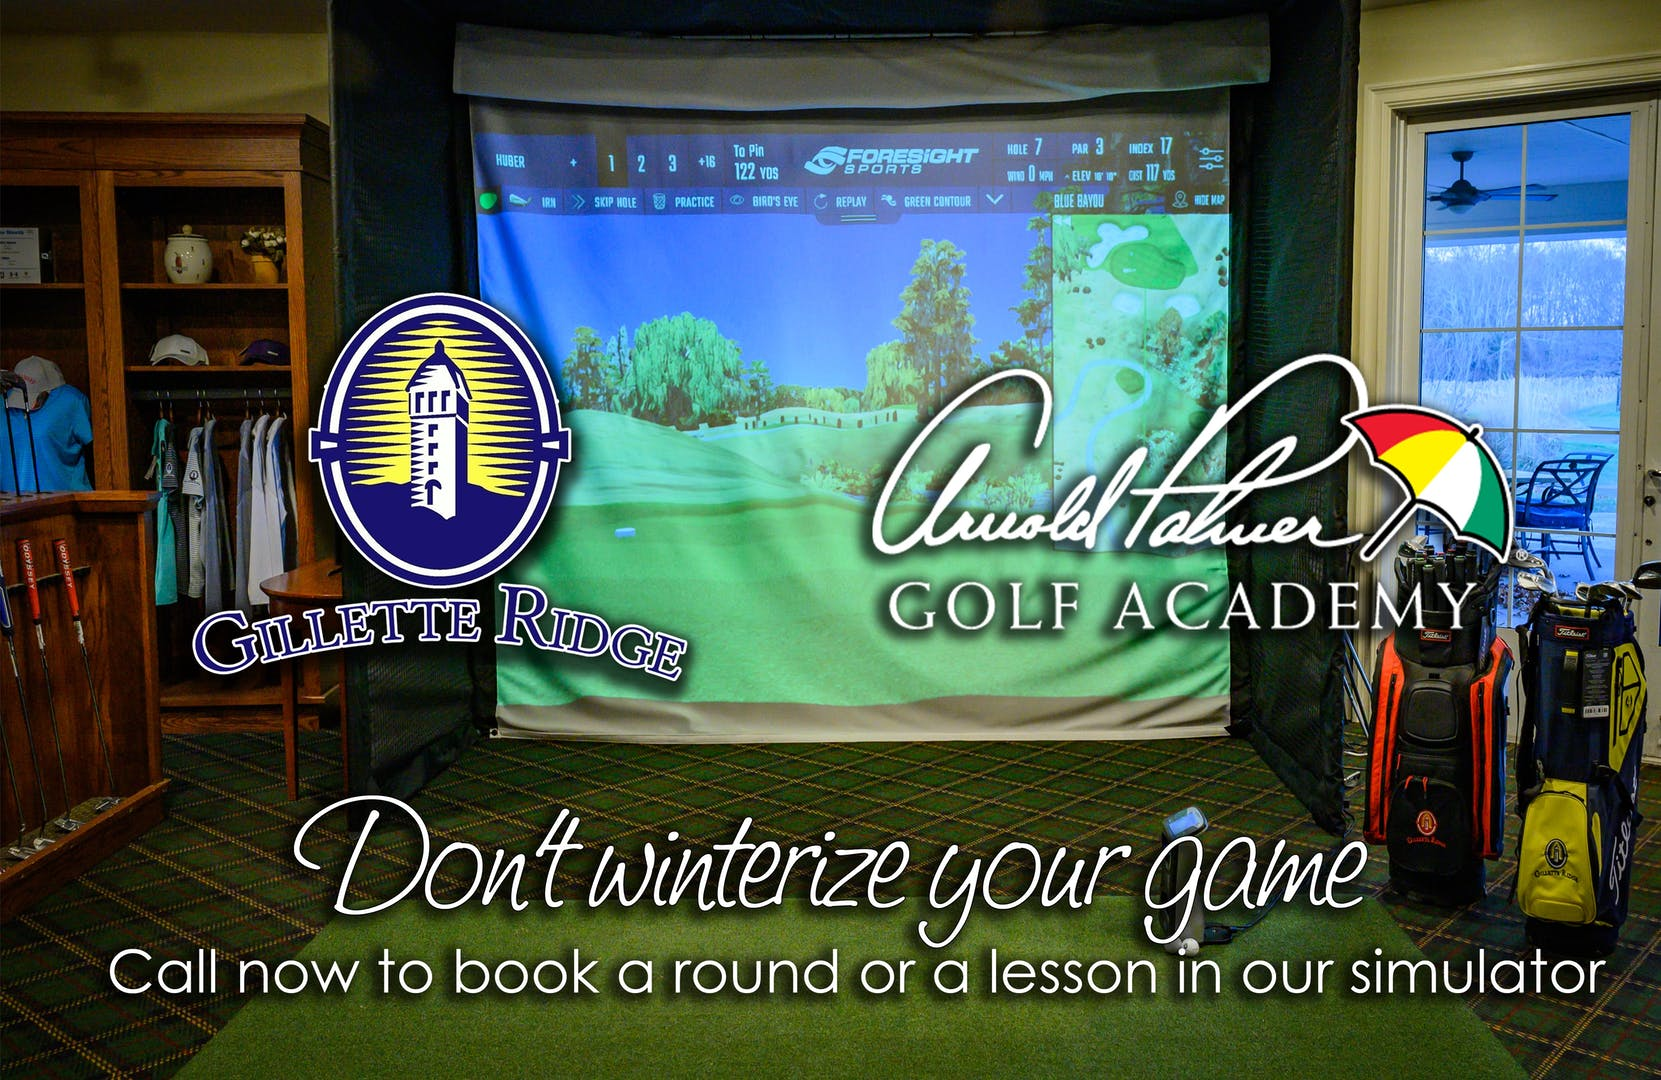 Image of golf simulator with text: Don't winterize your game. Call now to book a round or a lesson in our simulator.